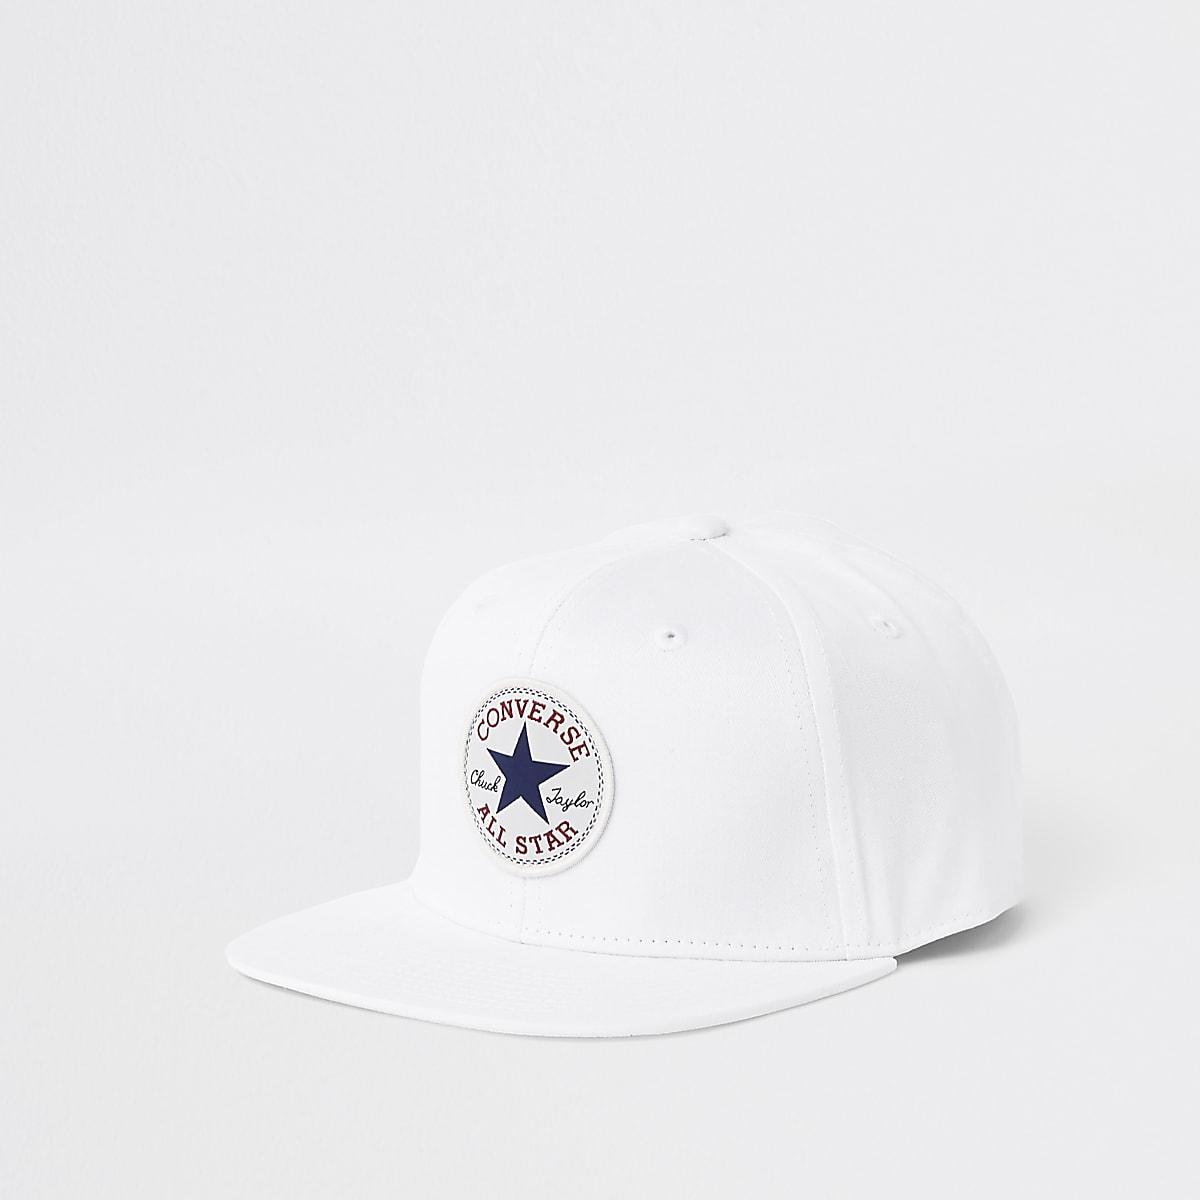 6992b76cd0164 Boys Converse white baseball cap - Hats - Accessories - boys